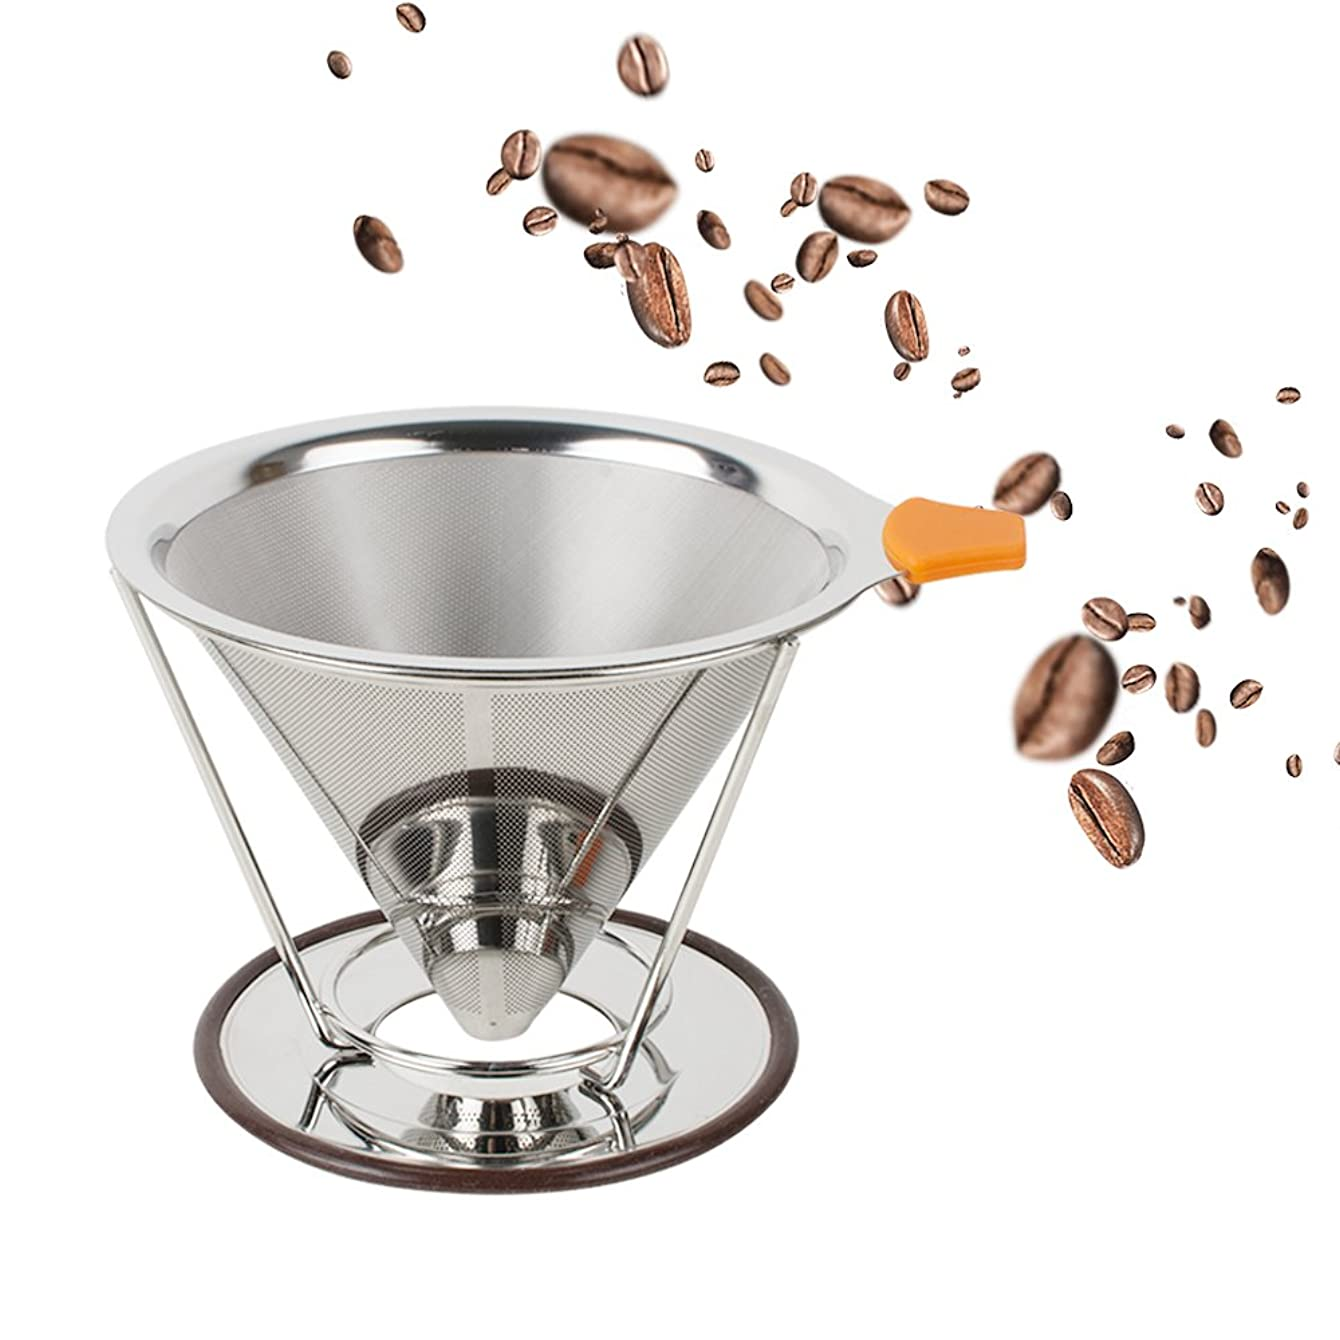 Vinmax Stainless Steel Cone Coffee Dripper Paperless, Double Mesh Pour Over Coffee Maker with Separate Standard 1-to-4 Coffee Filter Cone,Non-Slip Handle - Dishwasher (1)